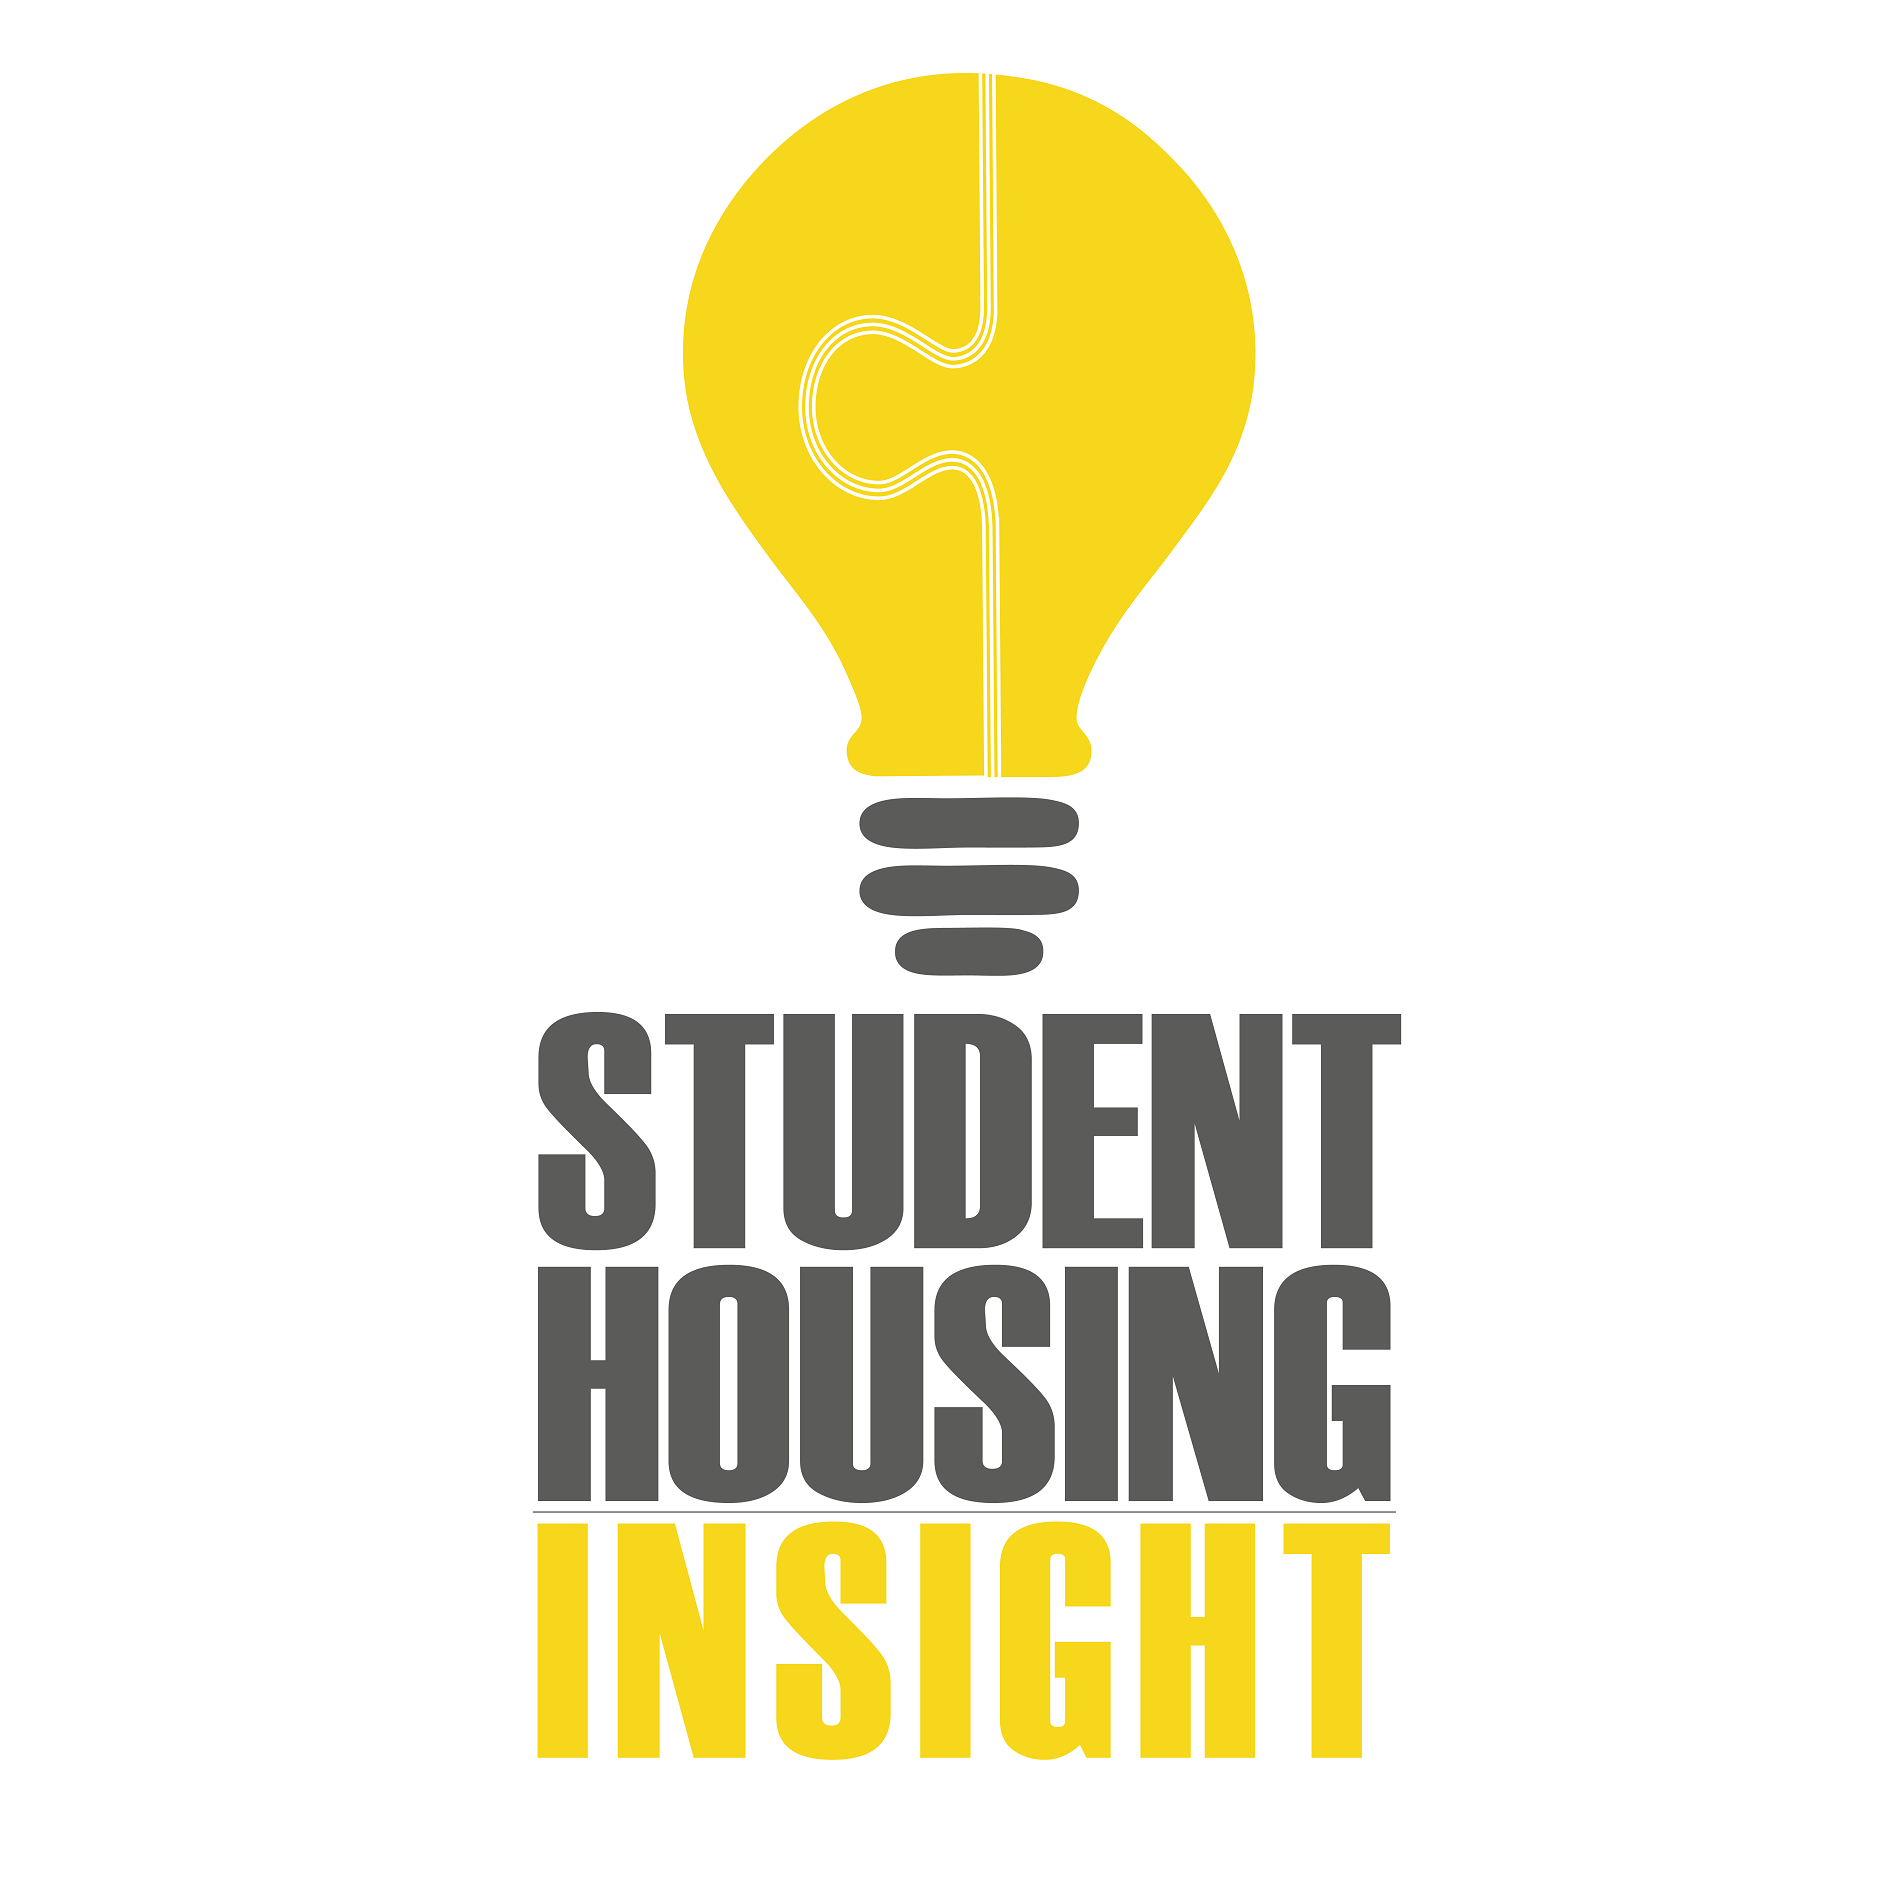 Student Housing Insight